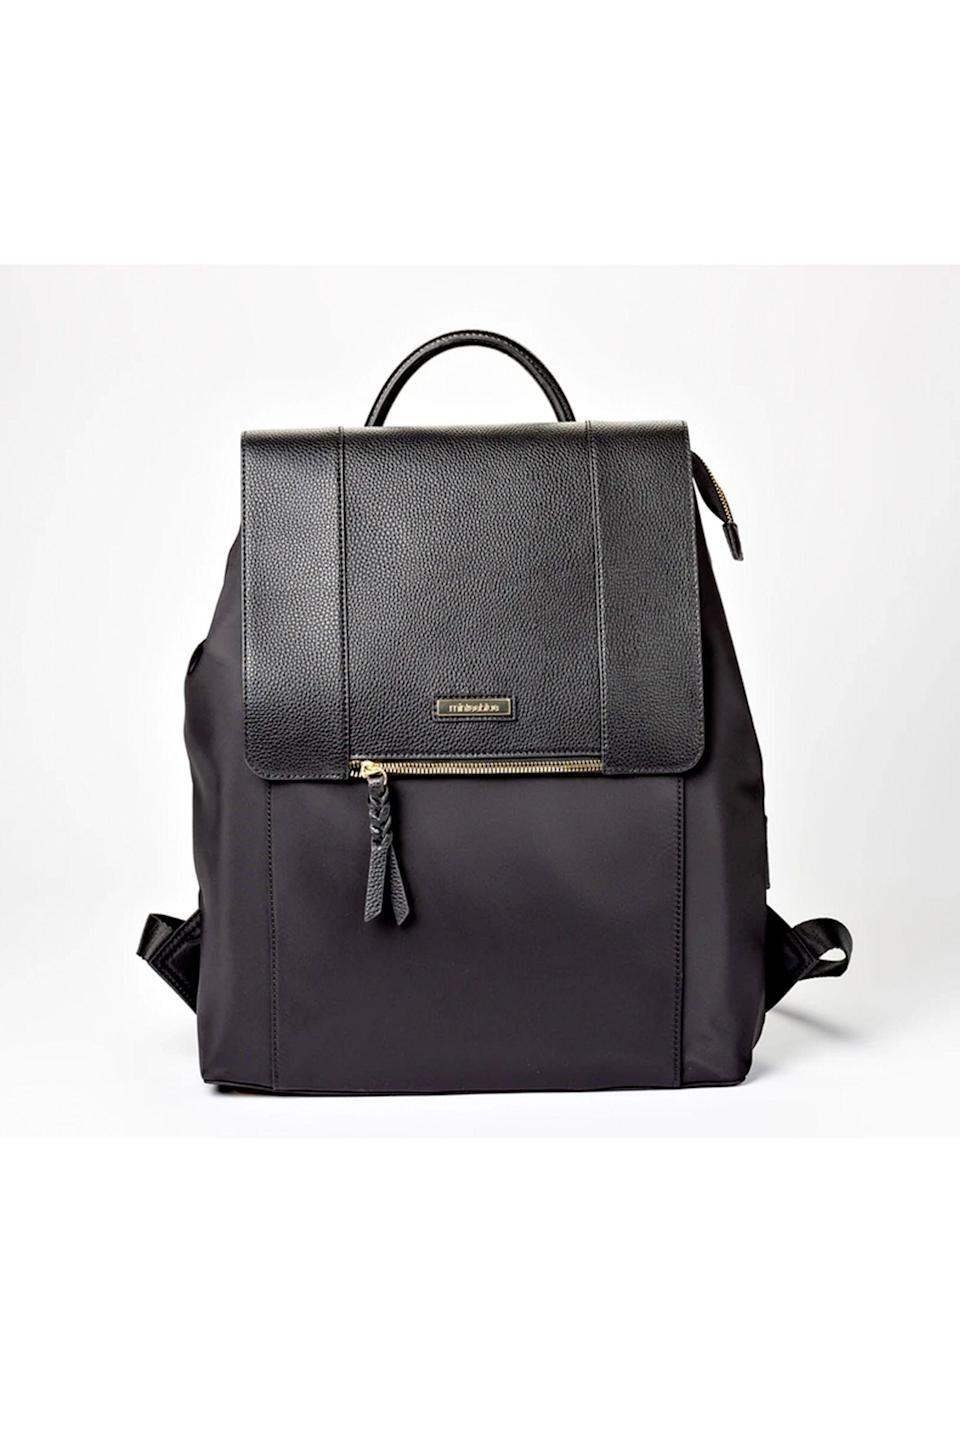 """<p><strong>Minkee Blue</strong></p><p>minkeeblue.com</p><p><strong>$169.00</strong></p><p><a href=""""https://minkeeblue.com/collections/nichet-backpack/products/mariah-backpack"""" rel=""""nofollow noopener"""" target=""""_blank"""" data-ylk=""""slk:Shop Now"""" class=""""link rapid-noclick-resp"""">Shop Now</a></p><p>This convertible backpack has a pop-out water bottle holder, <em>plus</em> space to store shoes or a lunch bag—not to mention it's incredibly chic.</p>"""